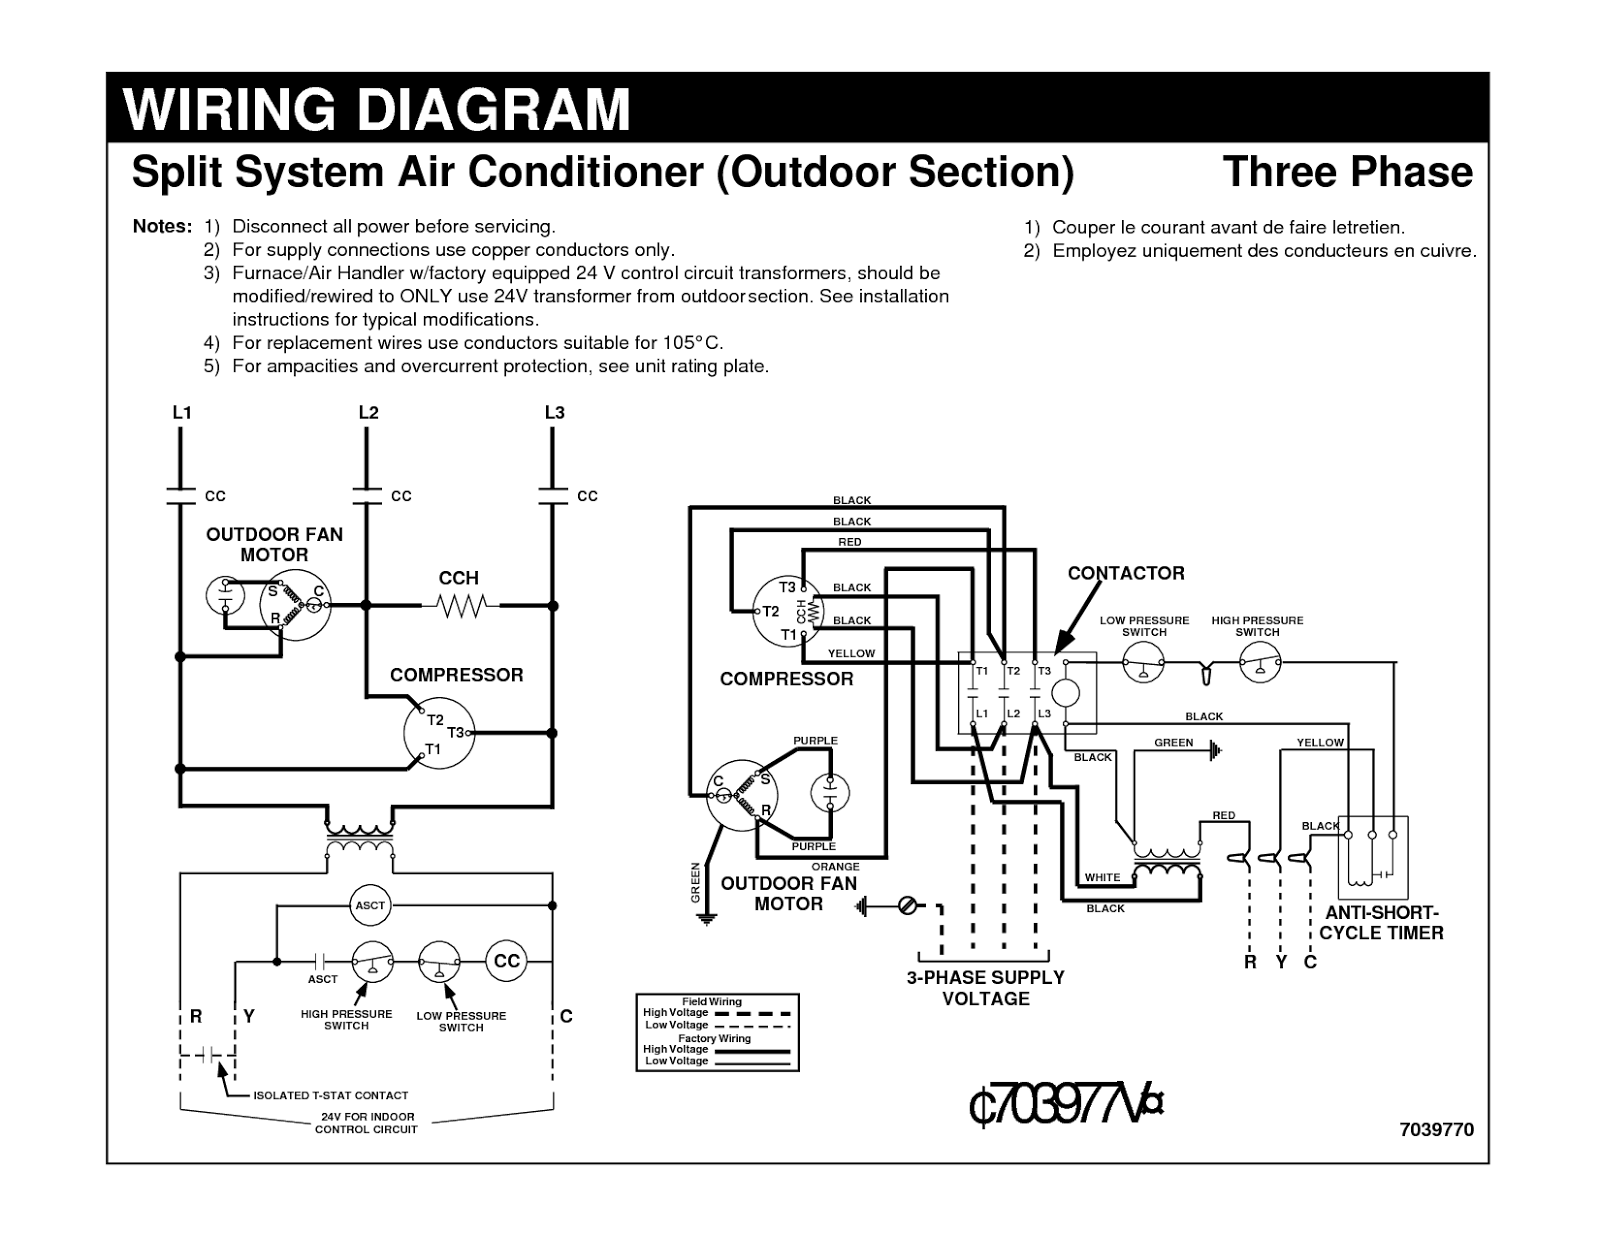 wiring+diagram+in+the+user+manual york rooftop unit wiring diagram york air handler wiring diagram  at webbmarketing.co